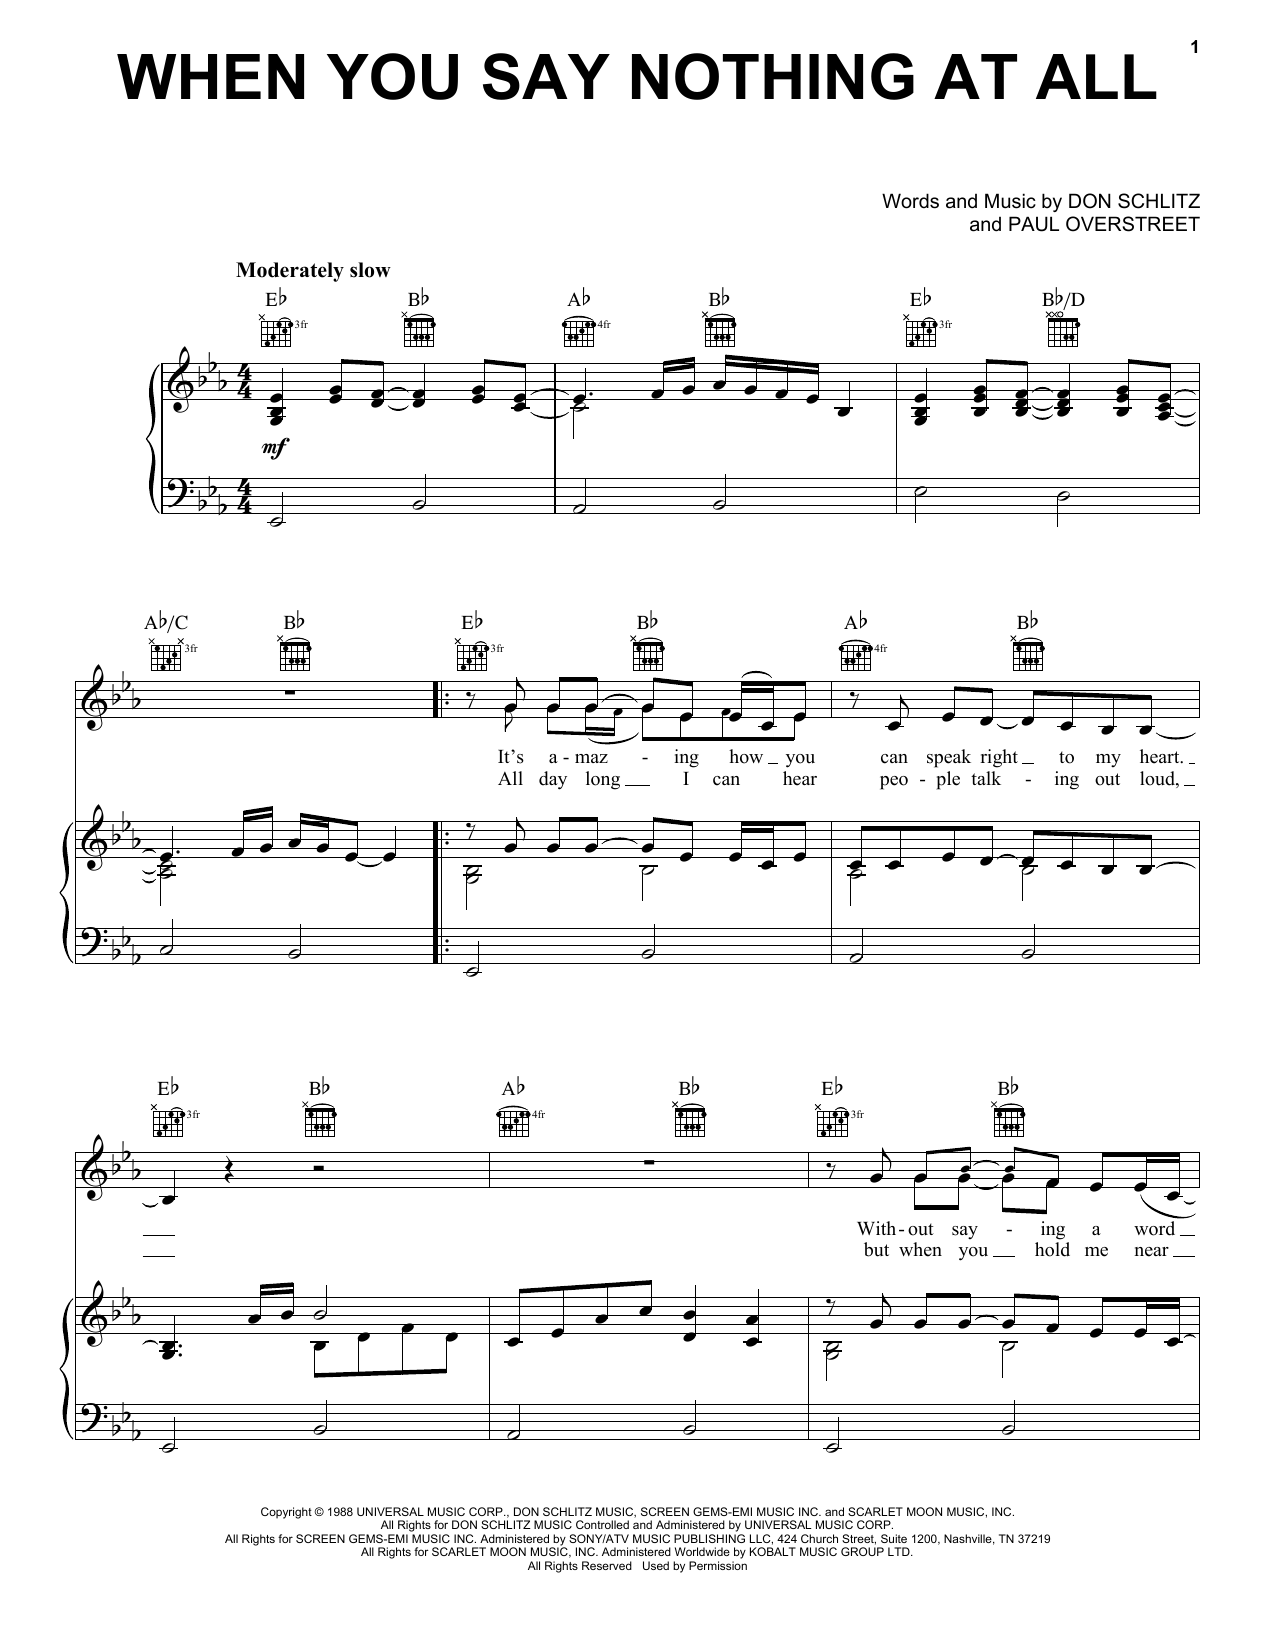 Alison Krauss & Union Station When You Say Nothing At All sheet music notes and chords